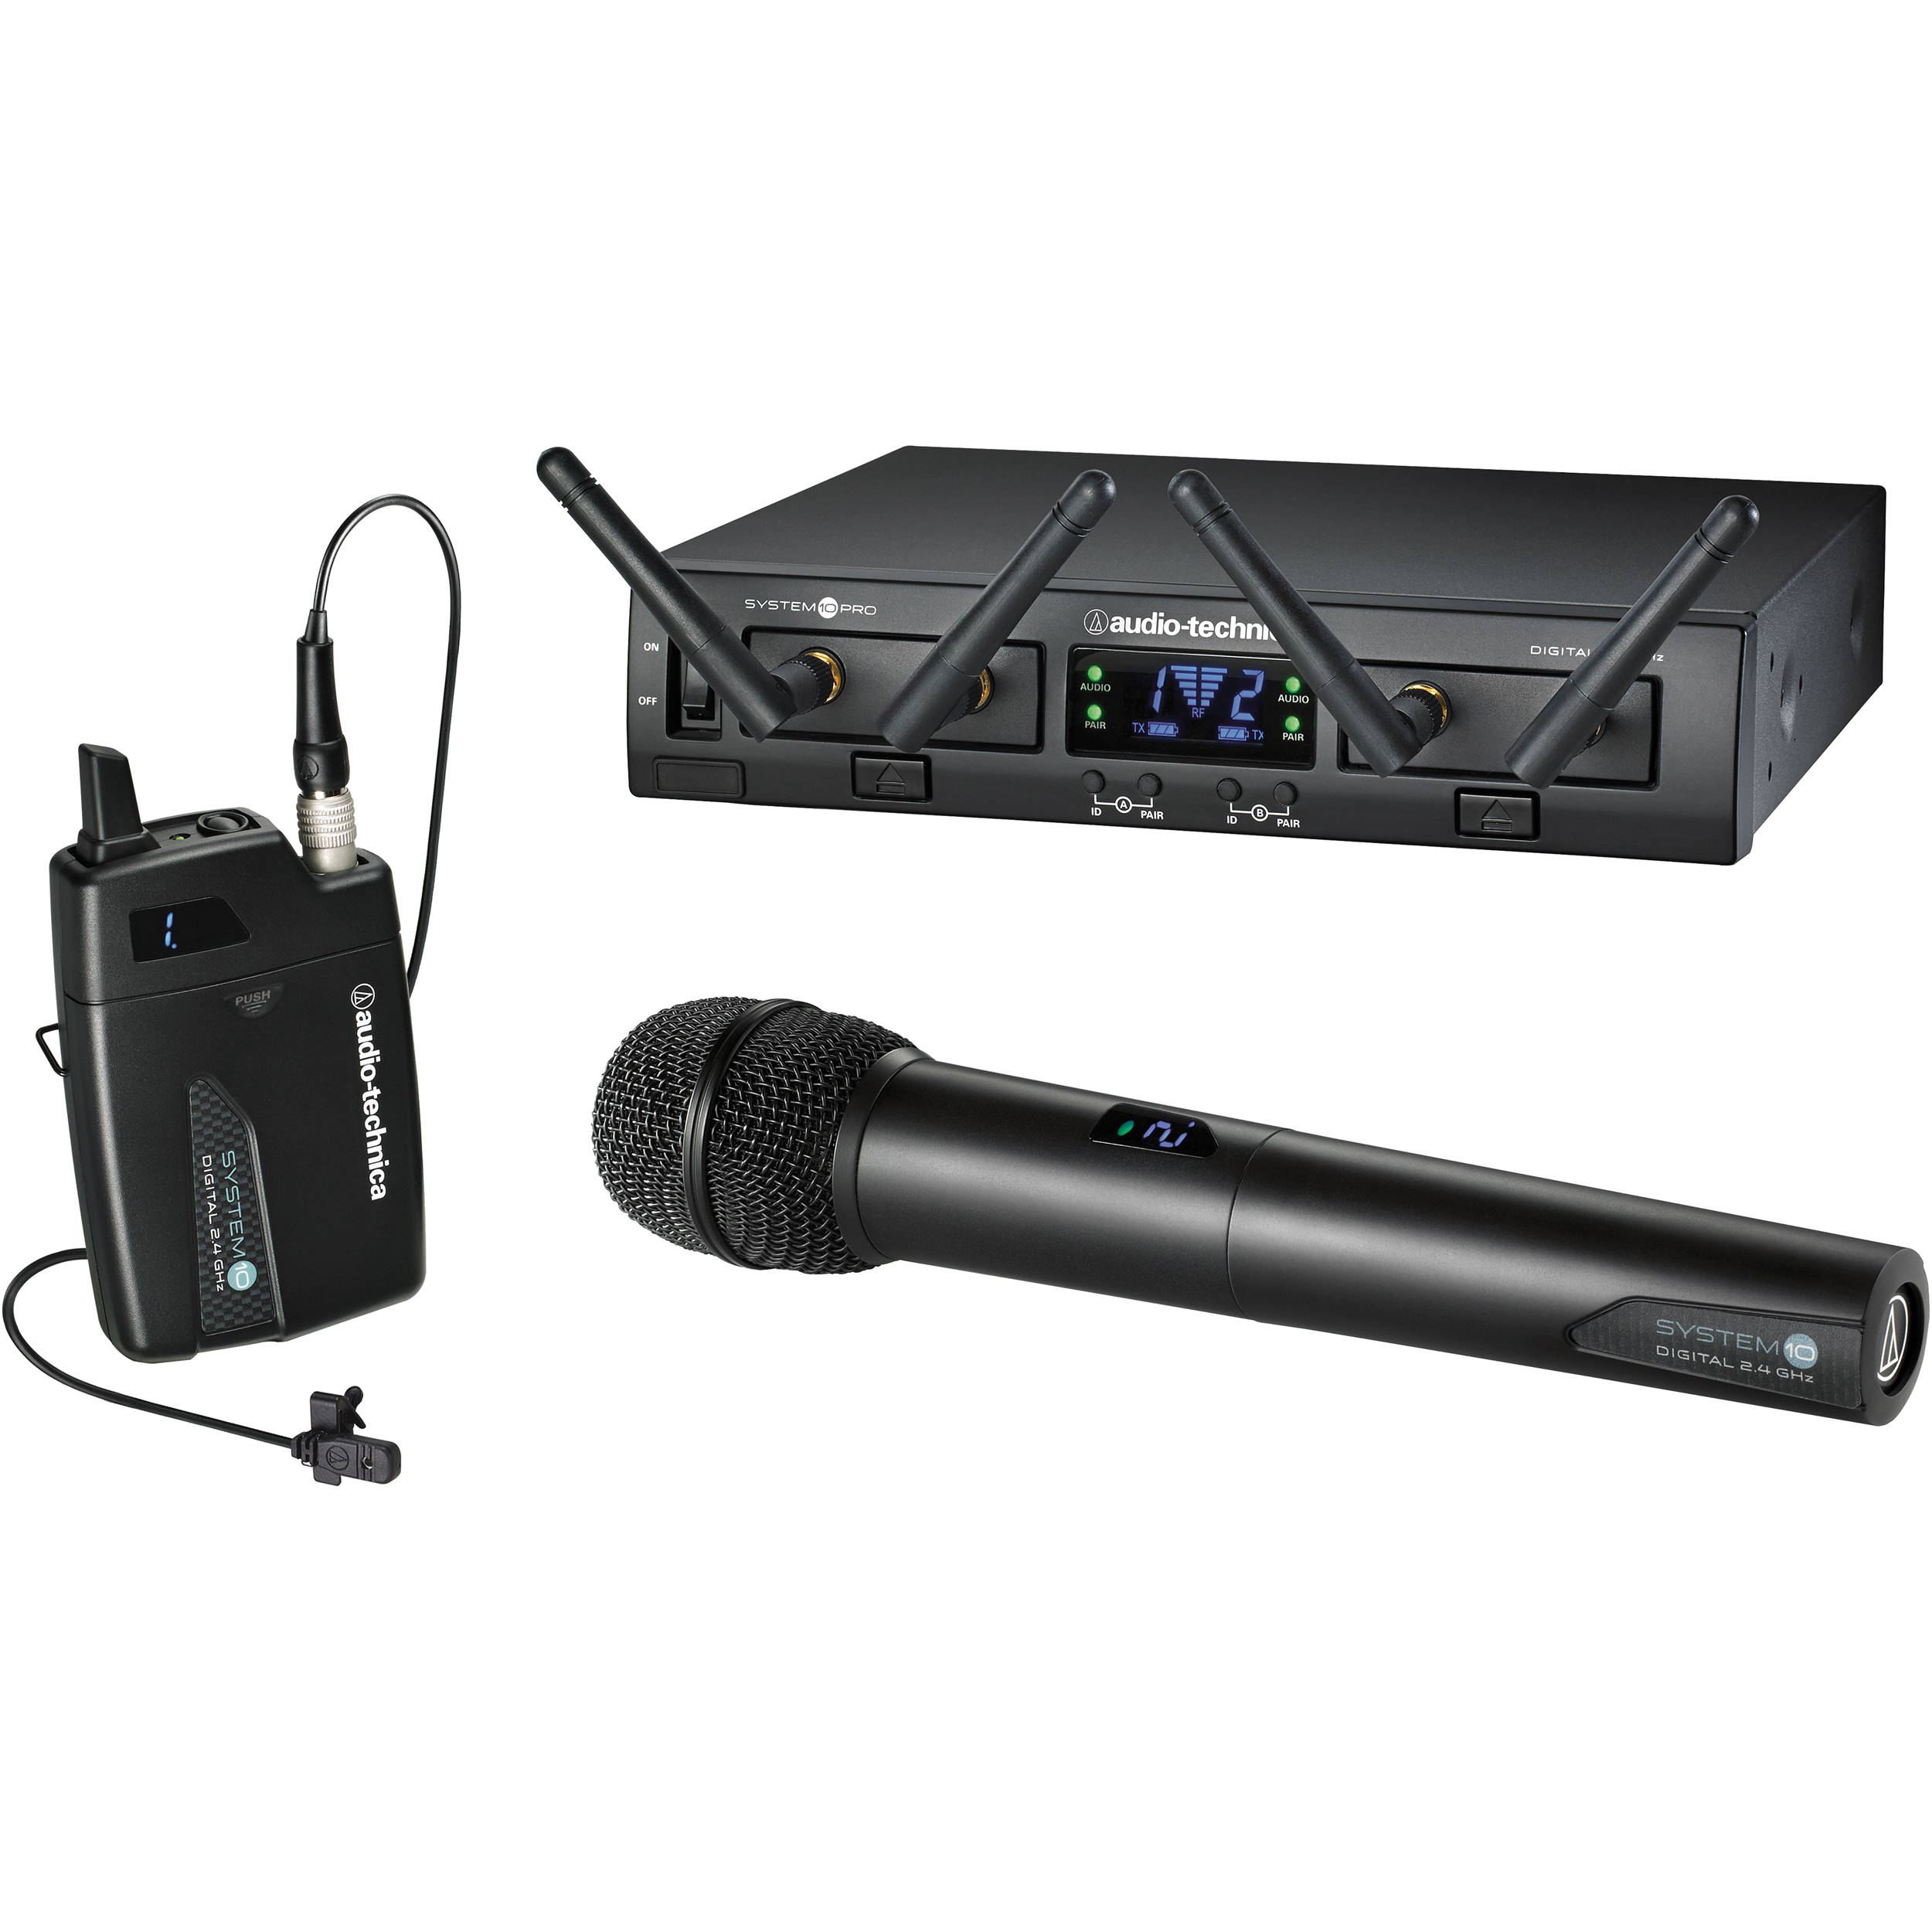 Wireless Microphone Audio Technica Atw R2100 Wire Center Details For Painless Wiring 80512 Heavy Duty Toggle Switch On Off Microphones B H Photo Video Rh Bhphotovideo Com System